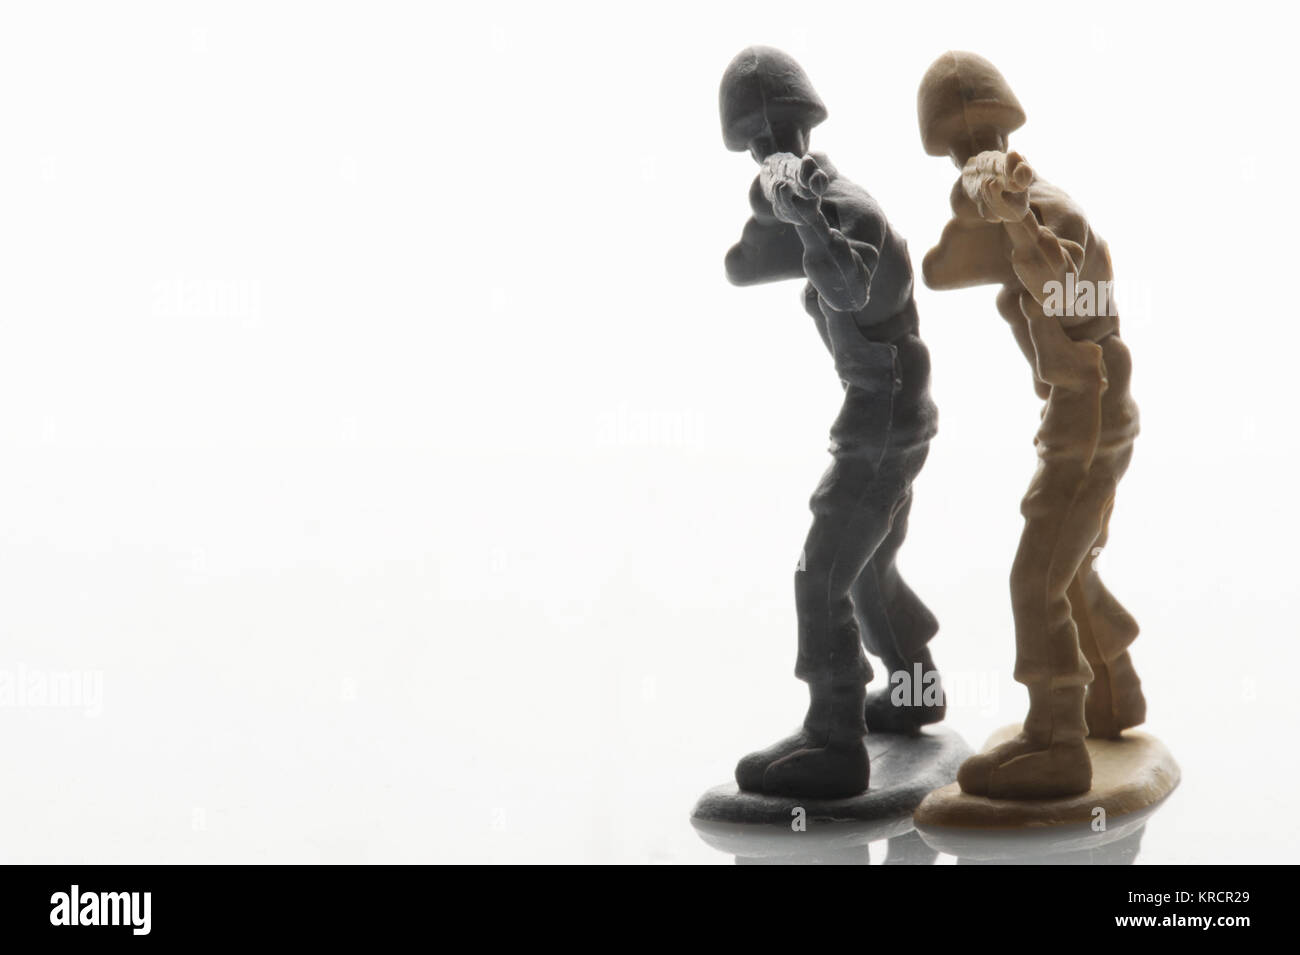 Toy soldiers play at war - Stock Image